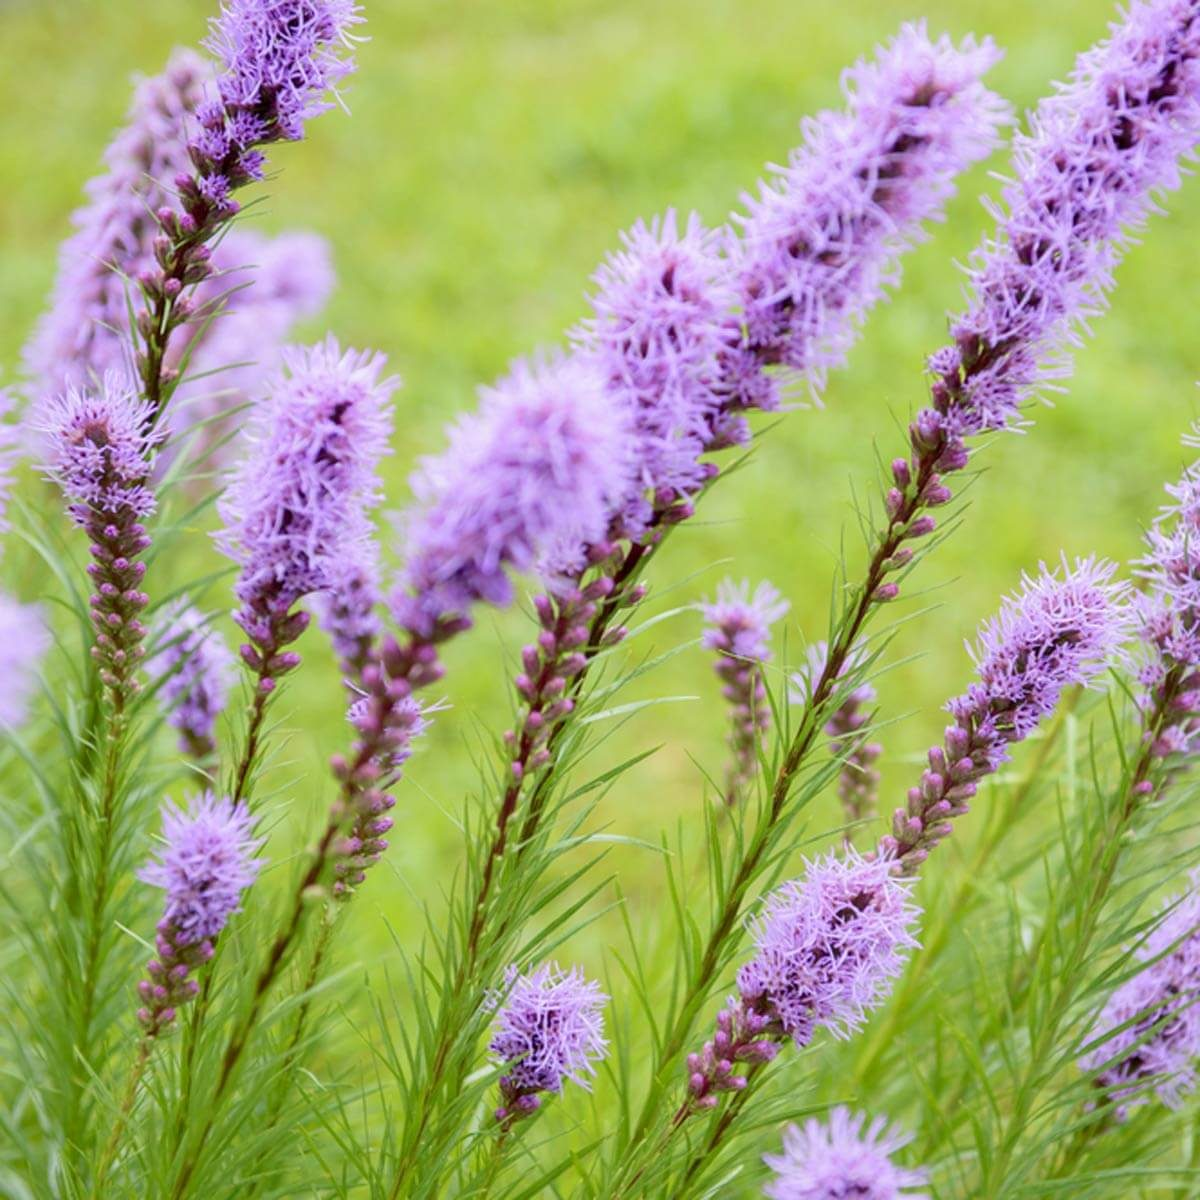 Liatris wildflower